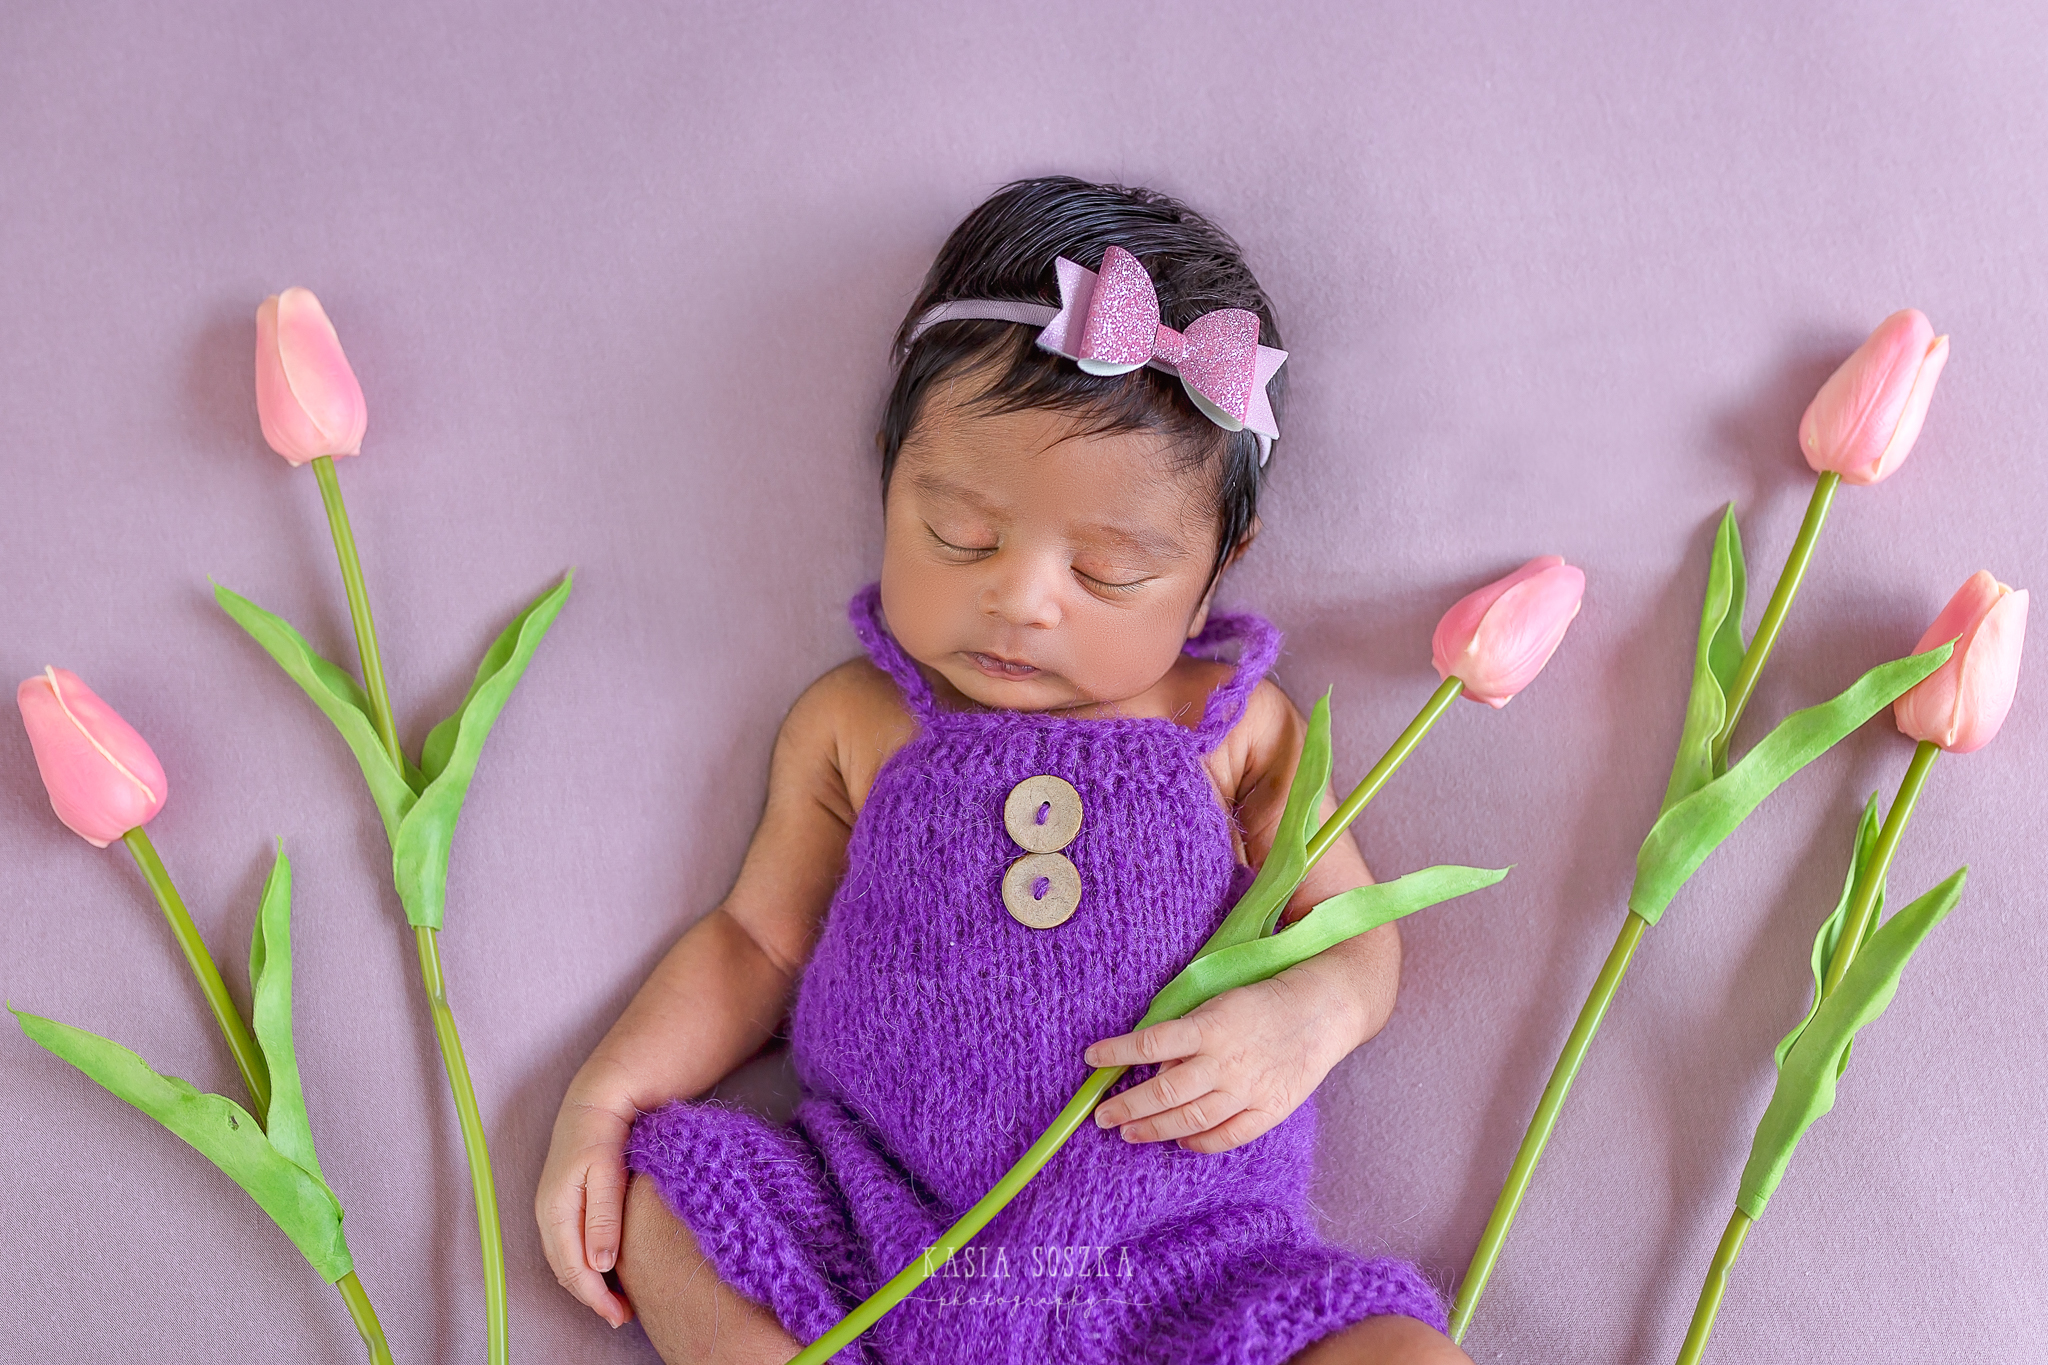 Newborn photography Leeds-Bradford-York-Harrogate: newborn baby girl wearing purple outfit on a pink blankets surrounded by pink tulips